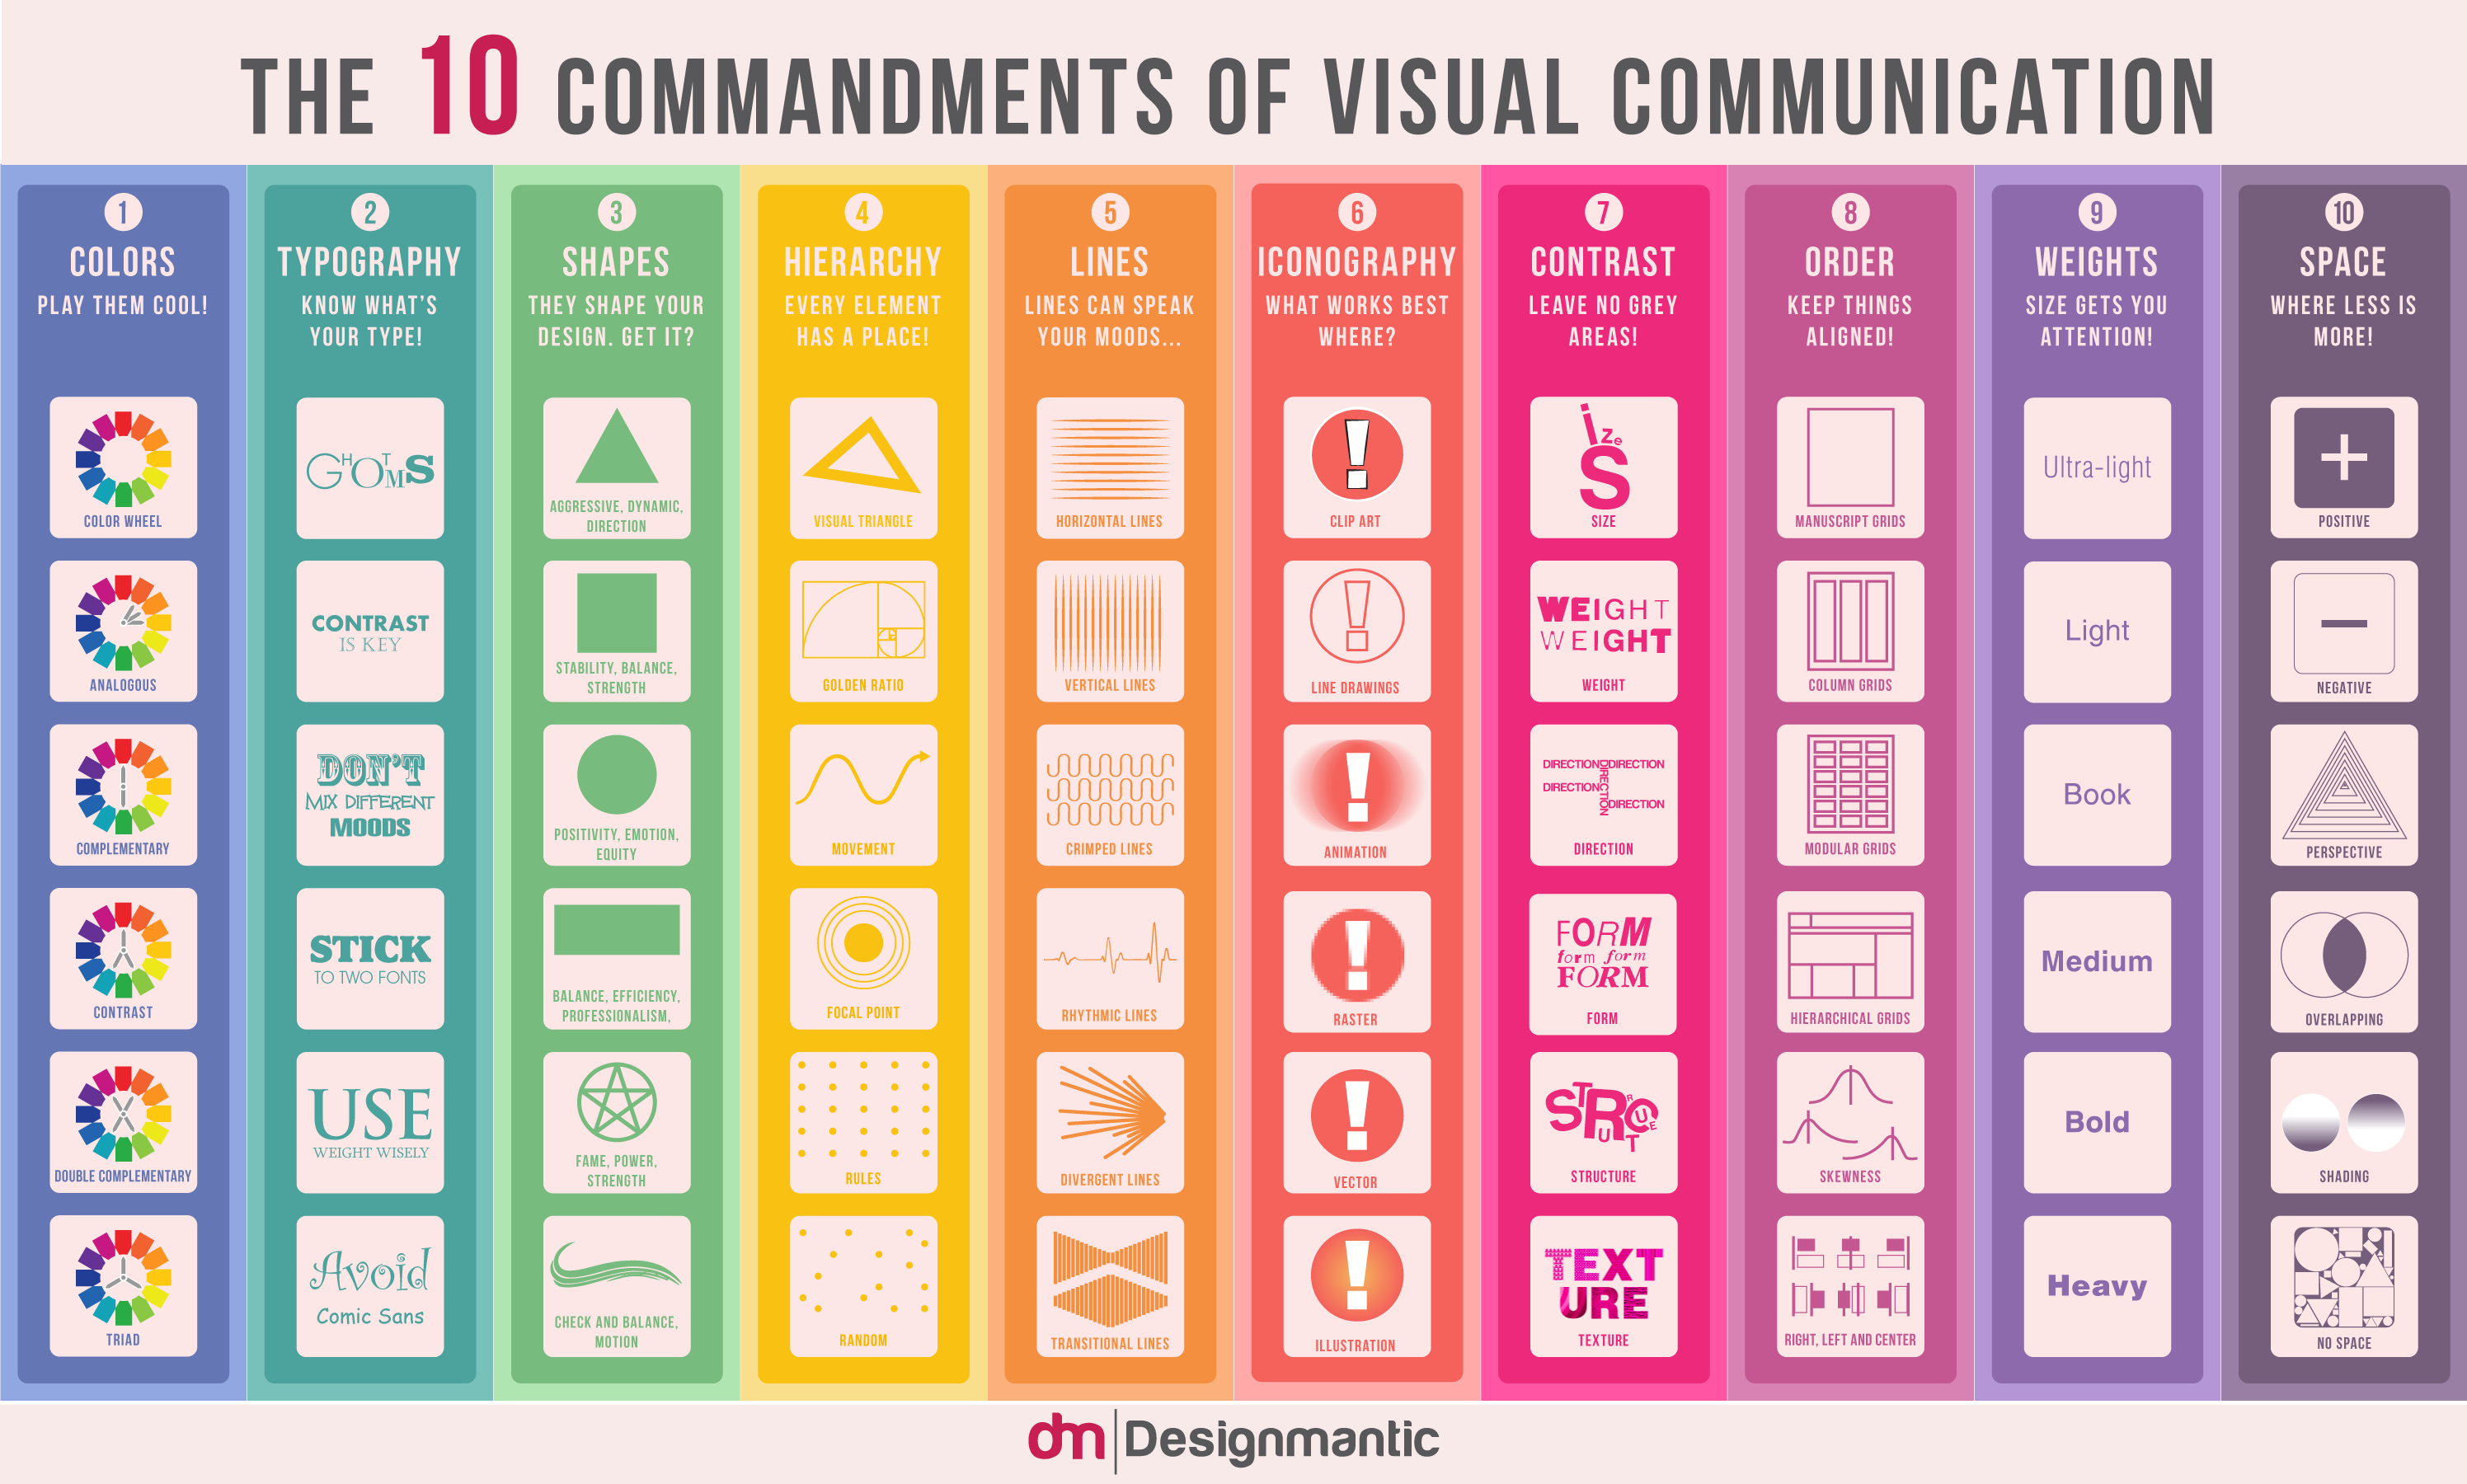 The 10 Commandments of Visual Communication